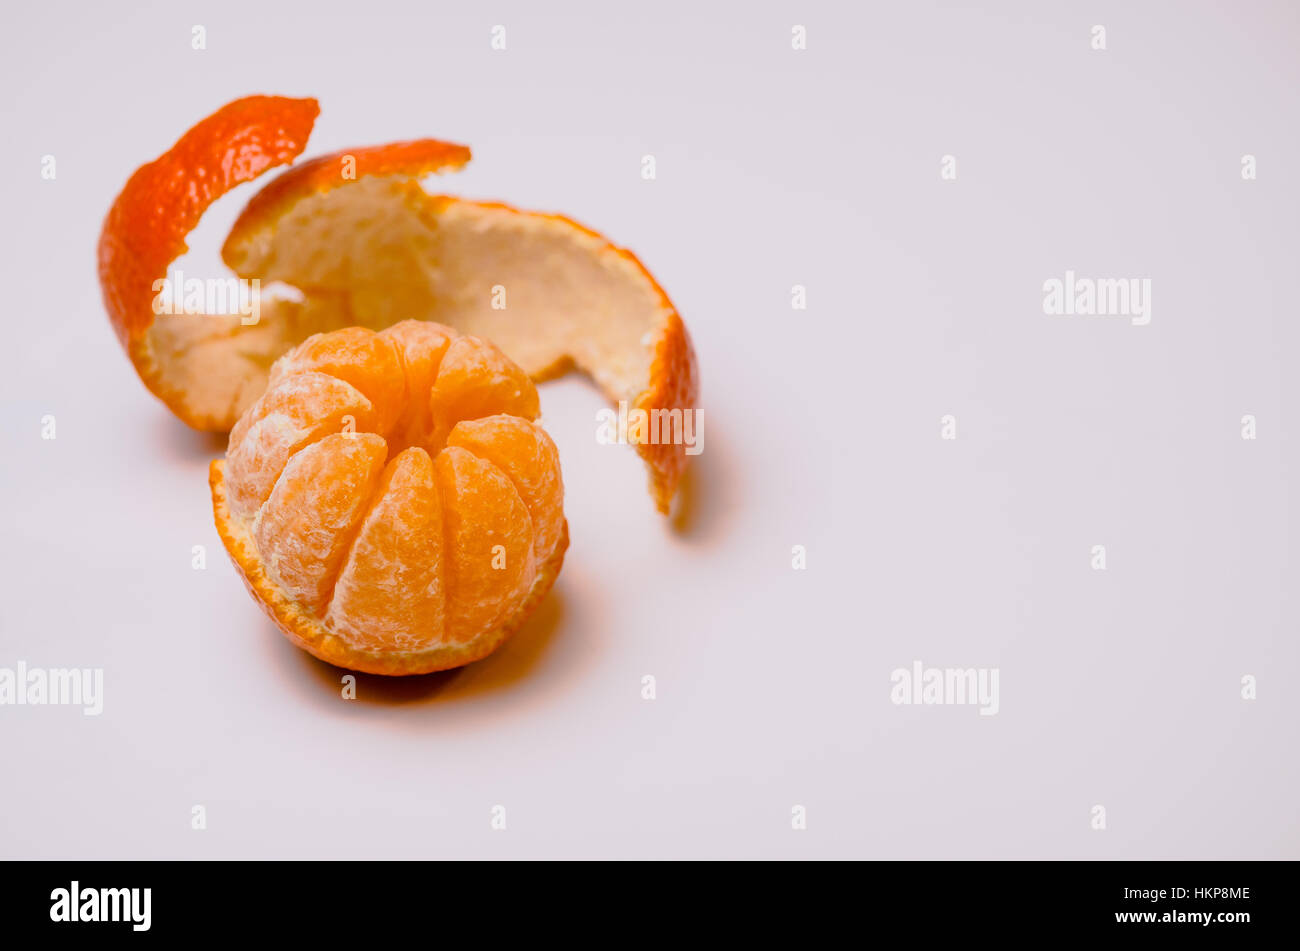 A single whole fresh clementine isolated on white background with room for text or copy. - Stock Image